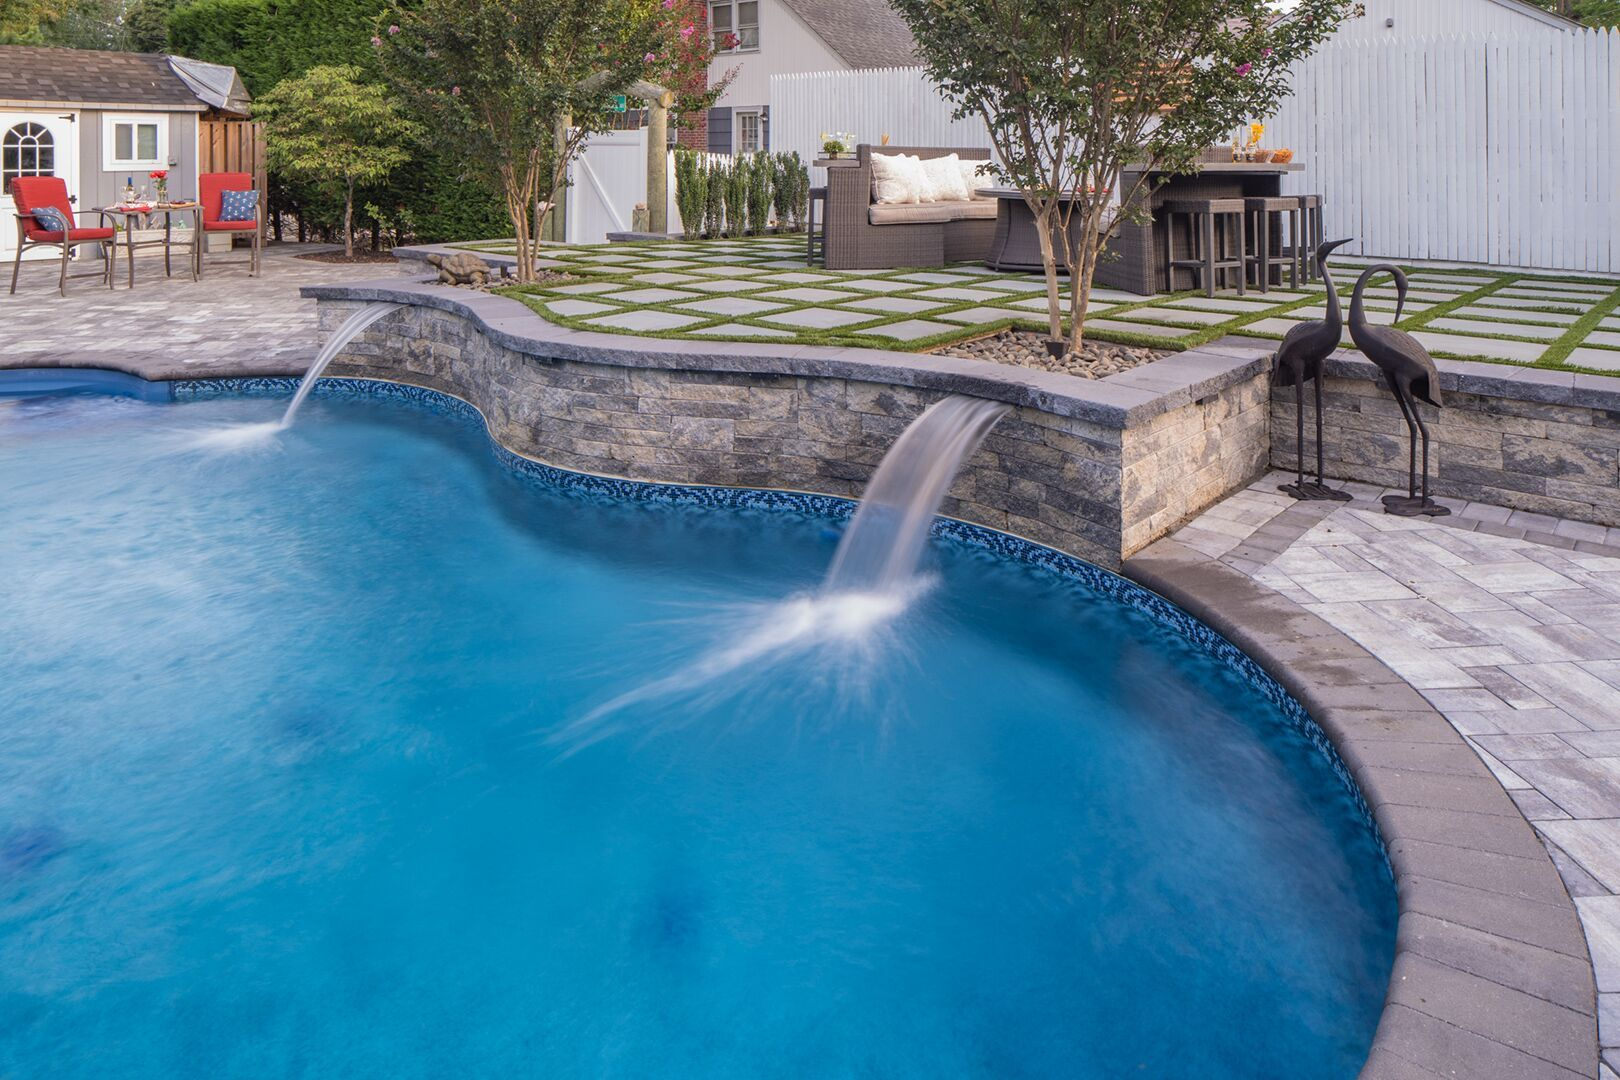 Add A Waterfall To Your Pool Patio To Make It Even More Unique